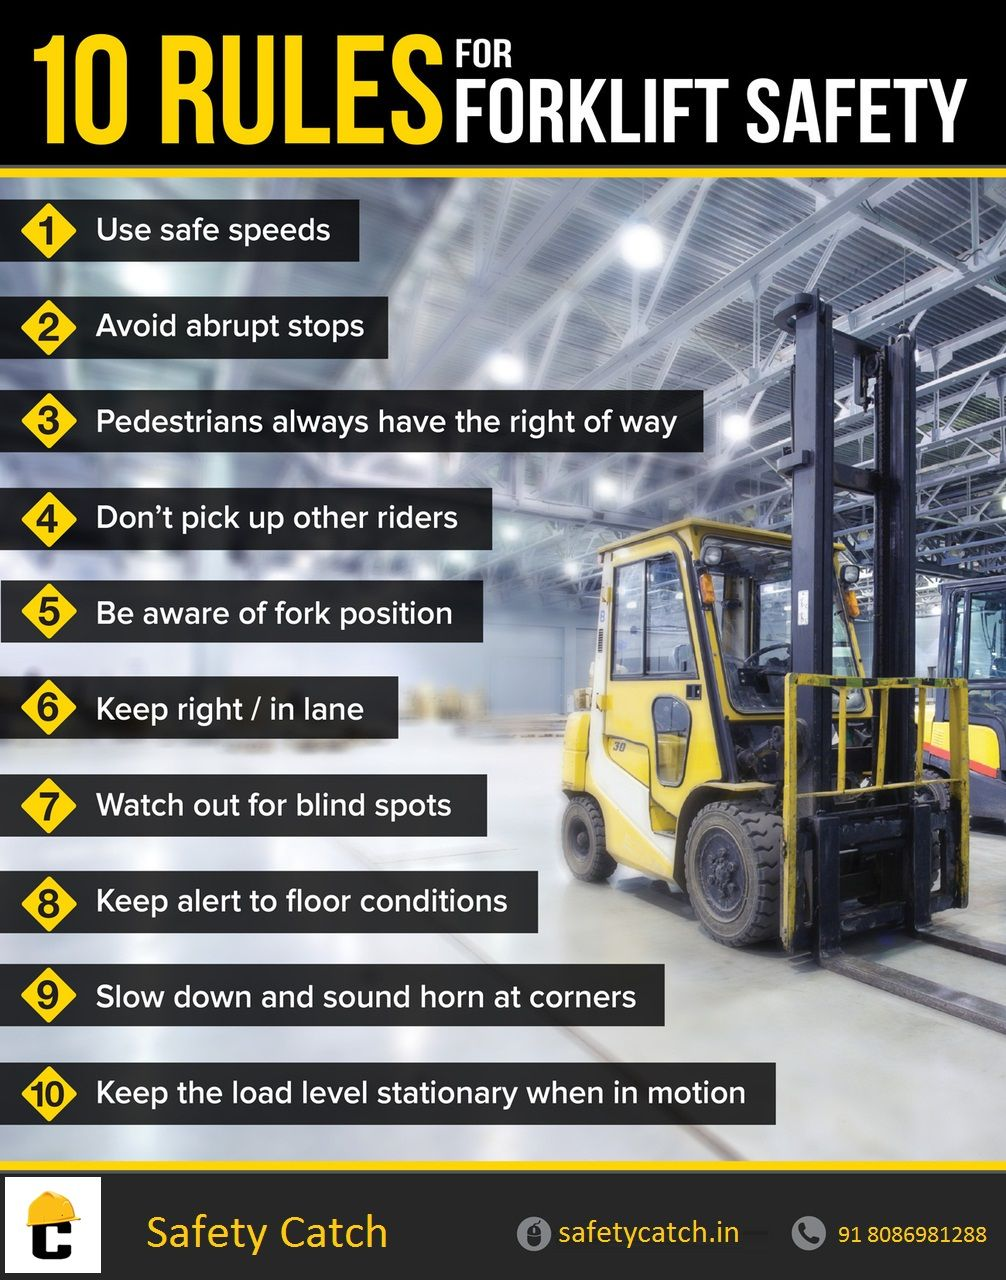 Forklift Safety tips for safety workers. Health and